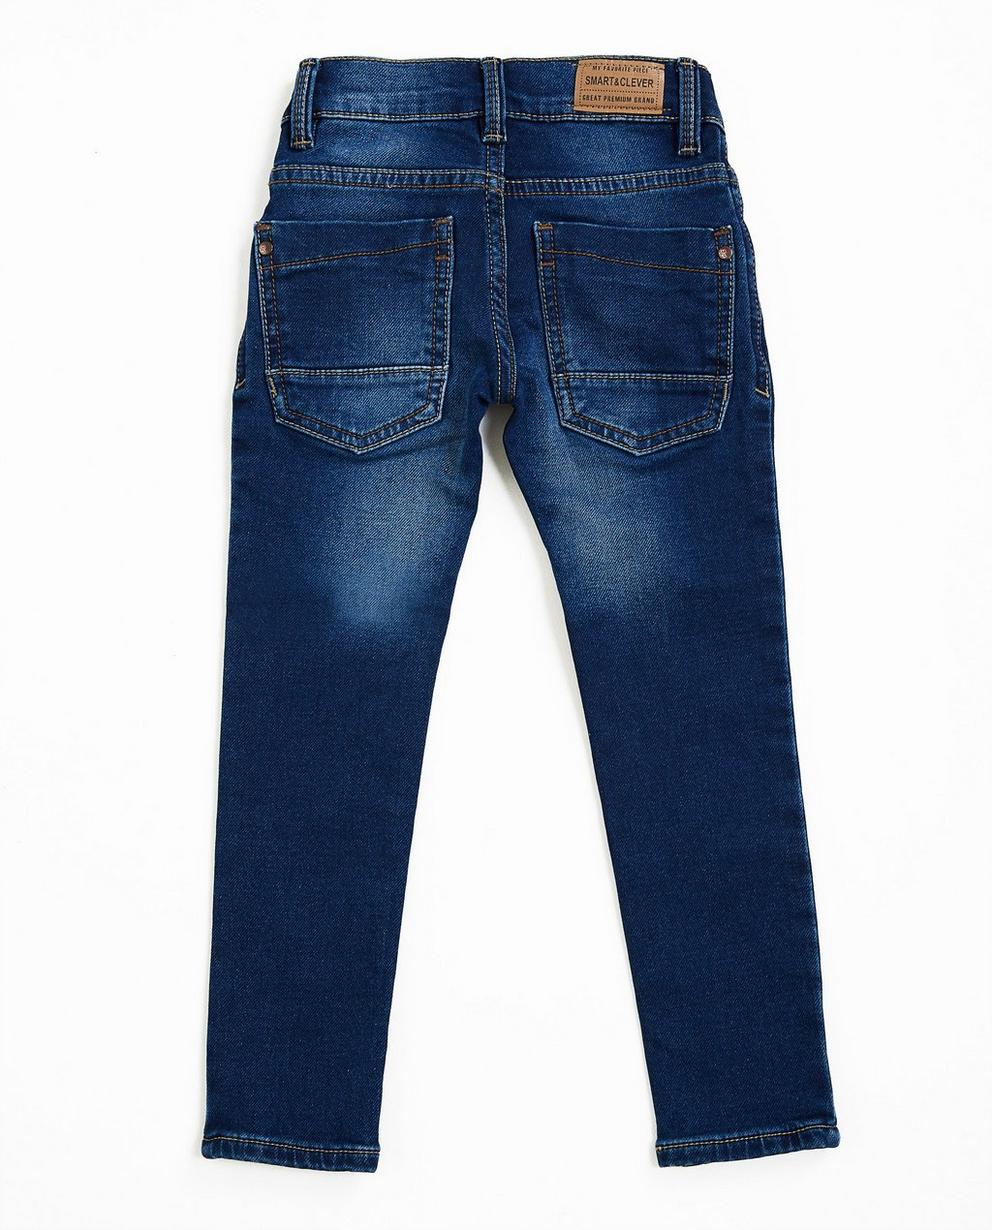 Jeans - navy - Jeans skinny bleu marine, sweat denim